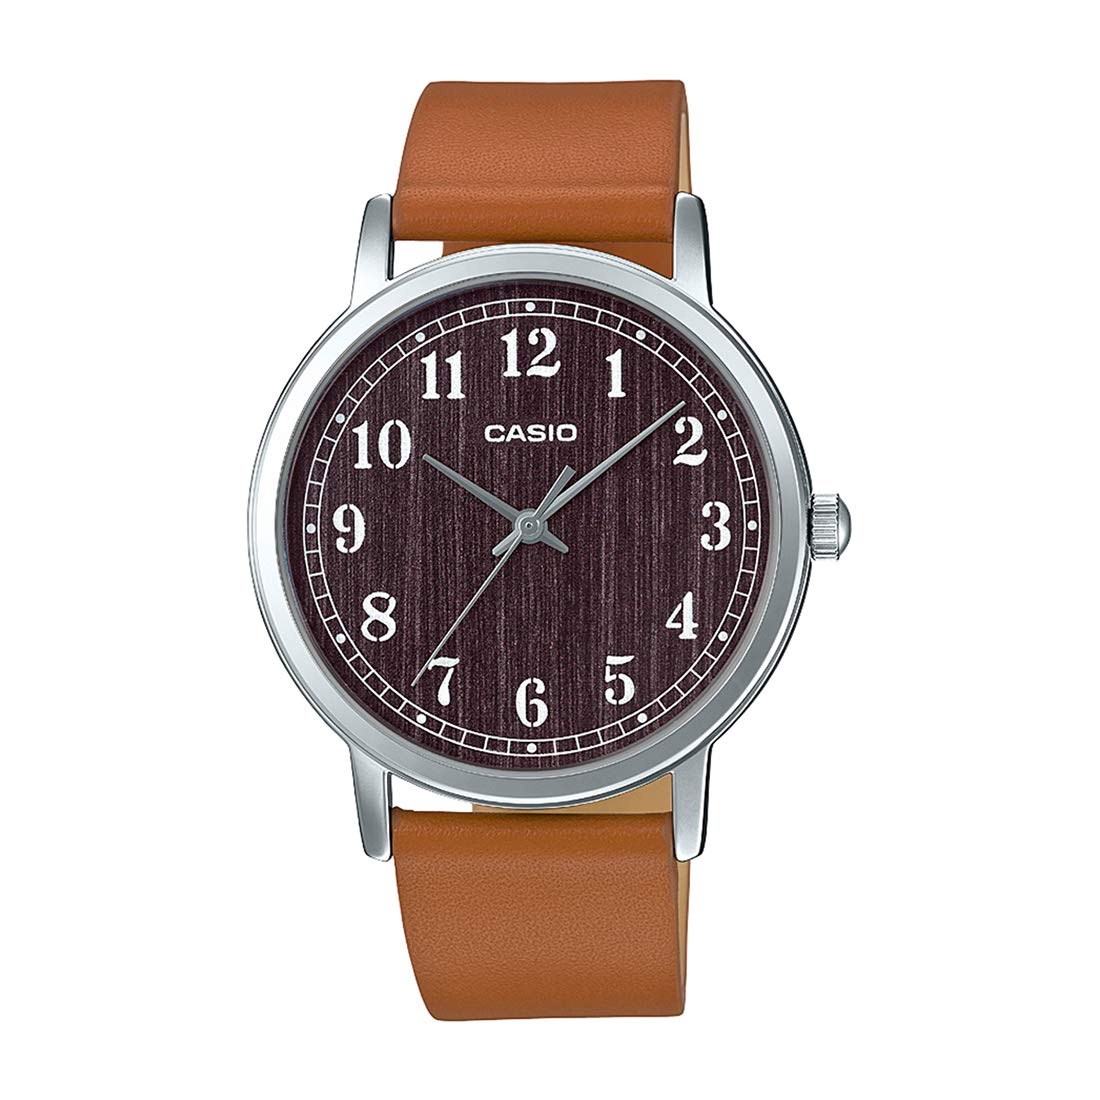 2baf50c2522 Amazon.com  Casio MTP-E145L-5B1 Men s Minimalist Grey Wood Pattern Dial  Leather Band Analog Watch  Watches